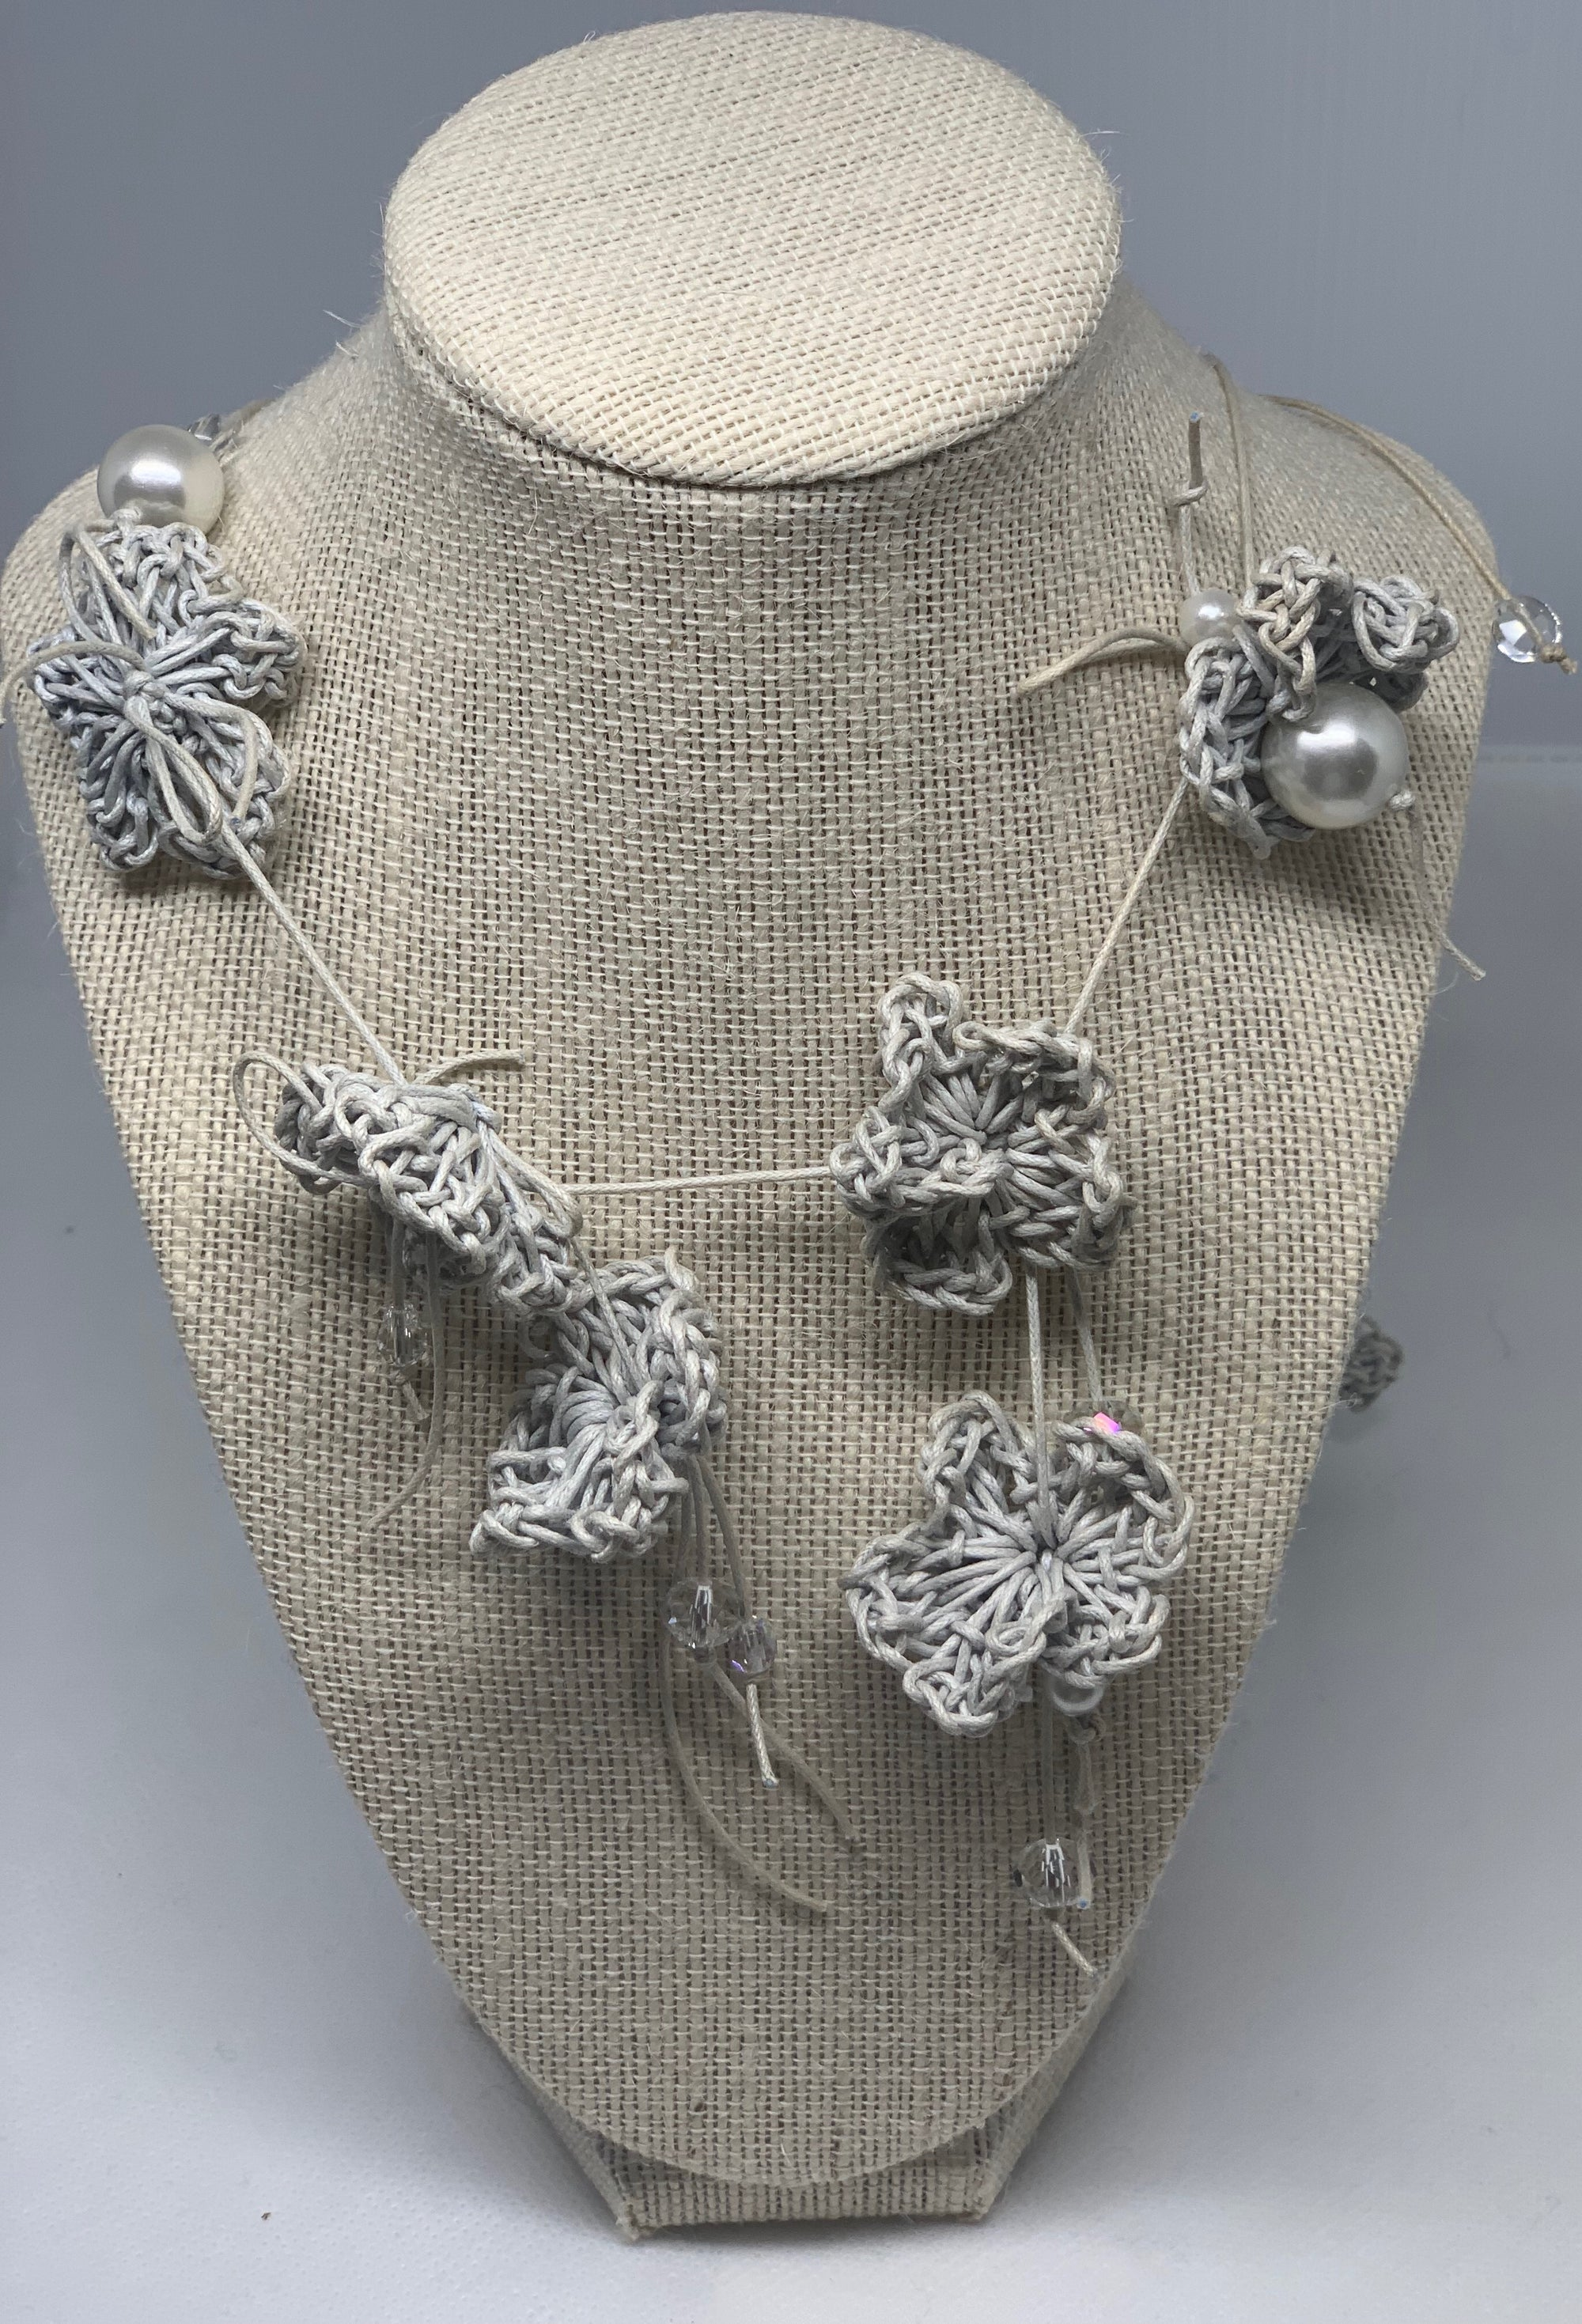 Corinna necklaces flower cotton handmade color white grey